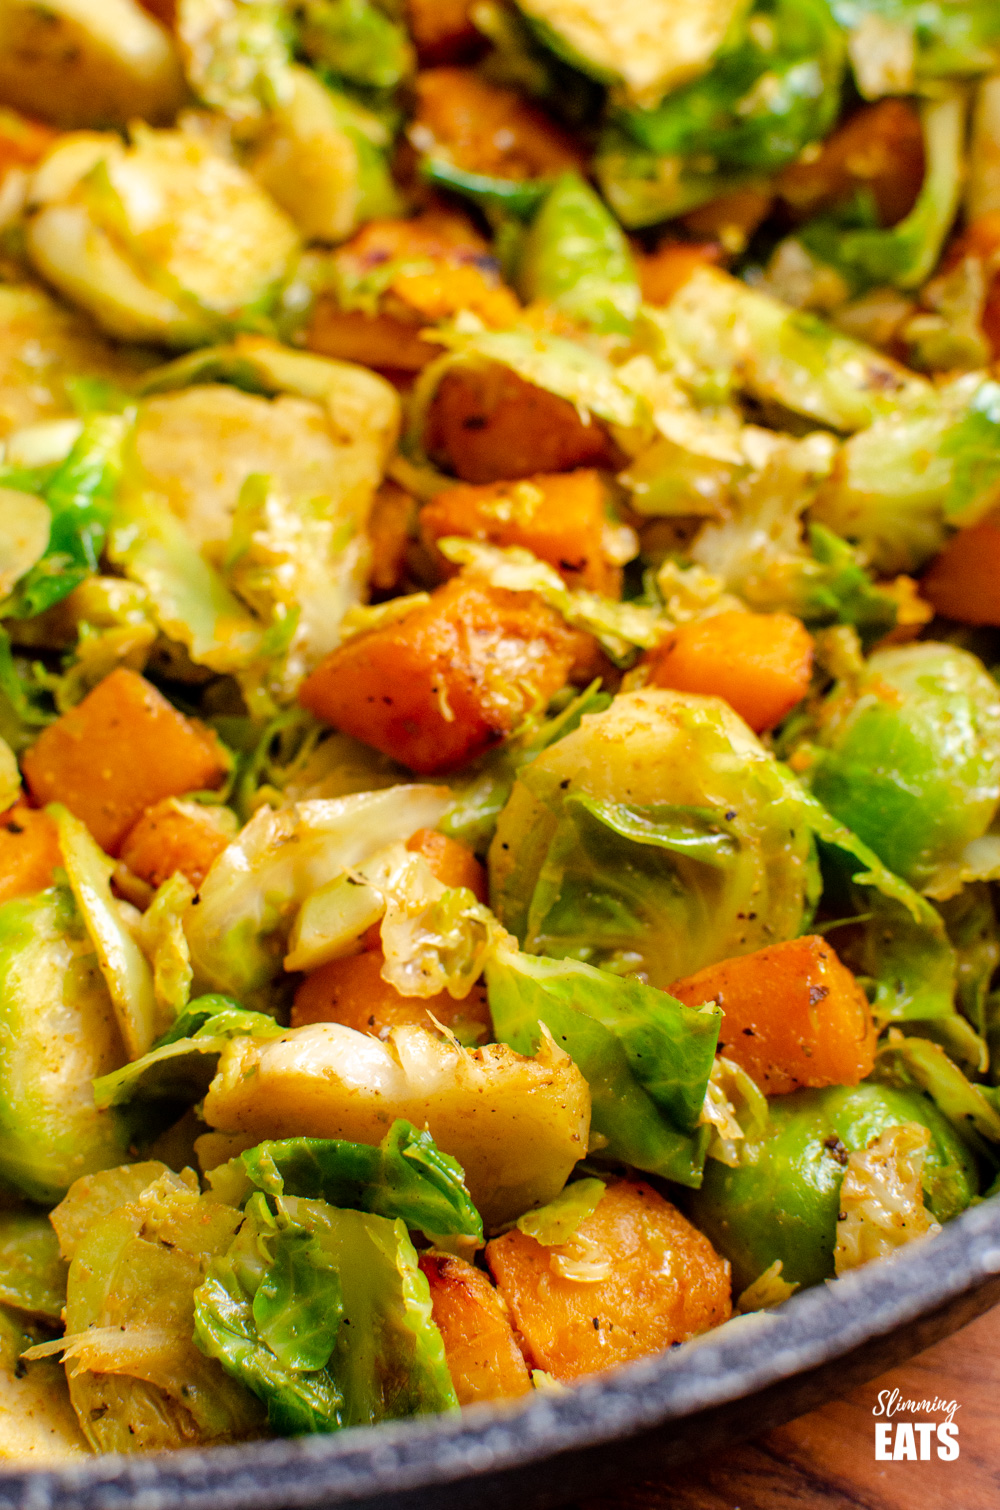 close up of Sautéed Brussel Sprouts with Roasted Butternut Squash in deep frying pan